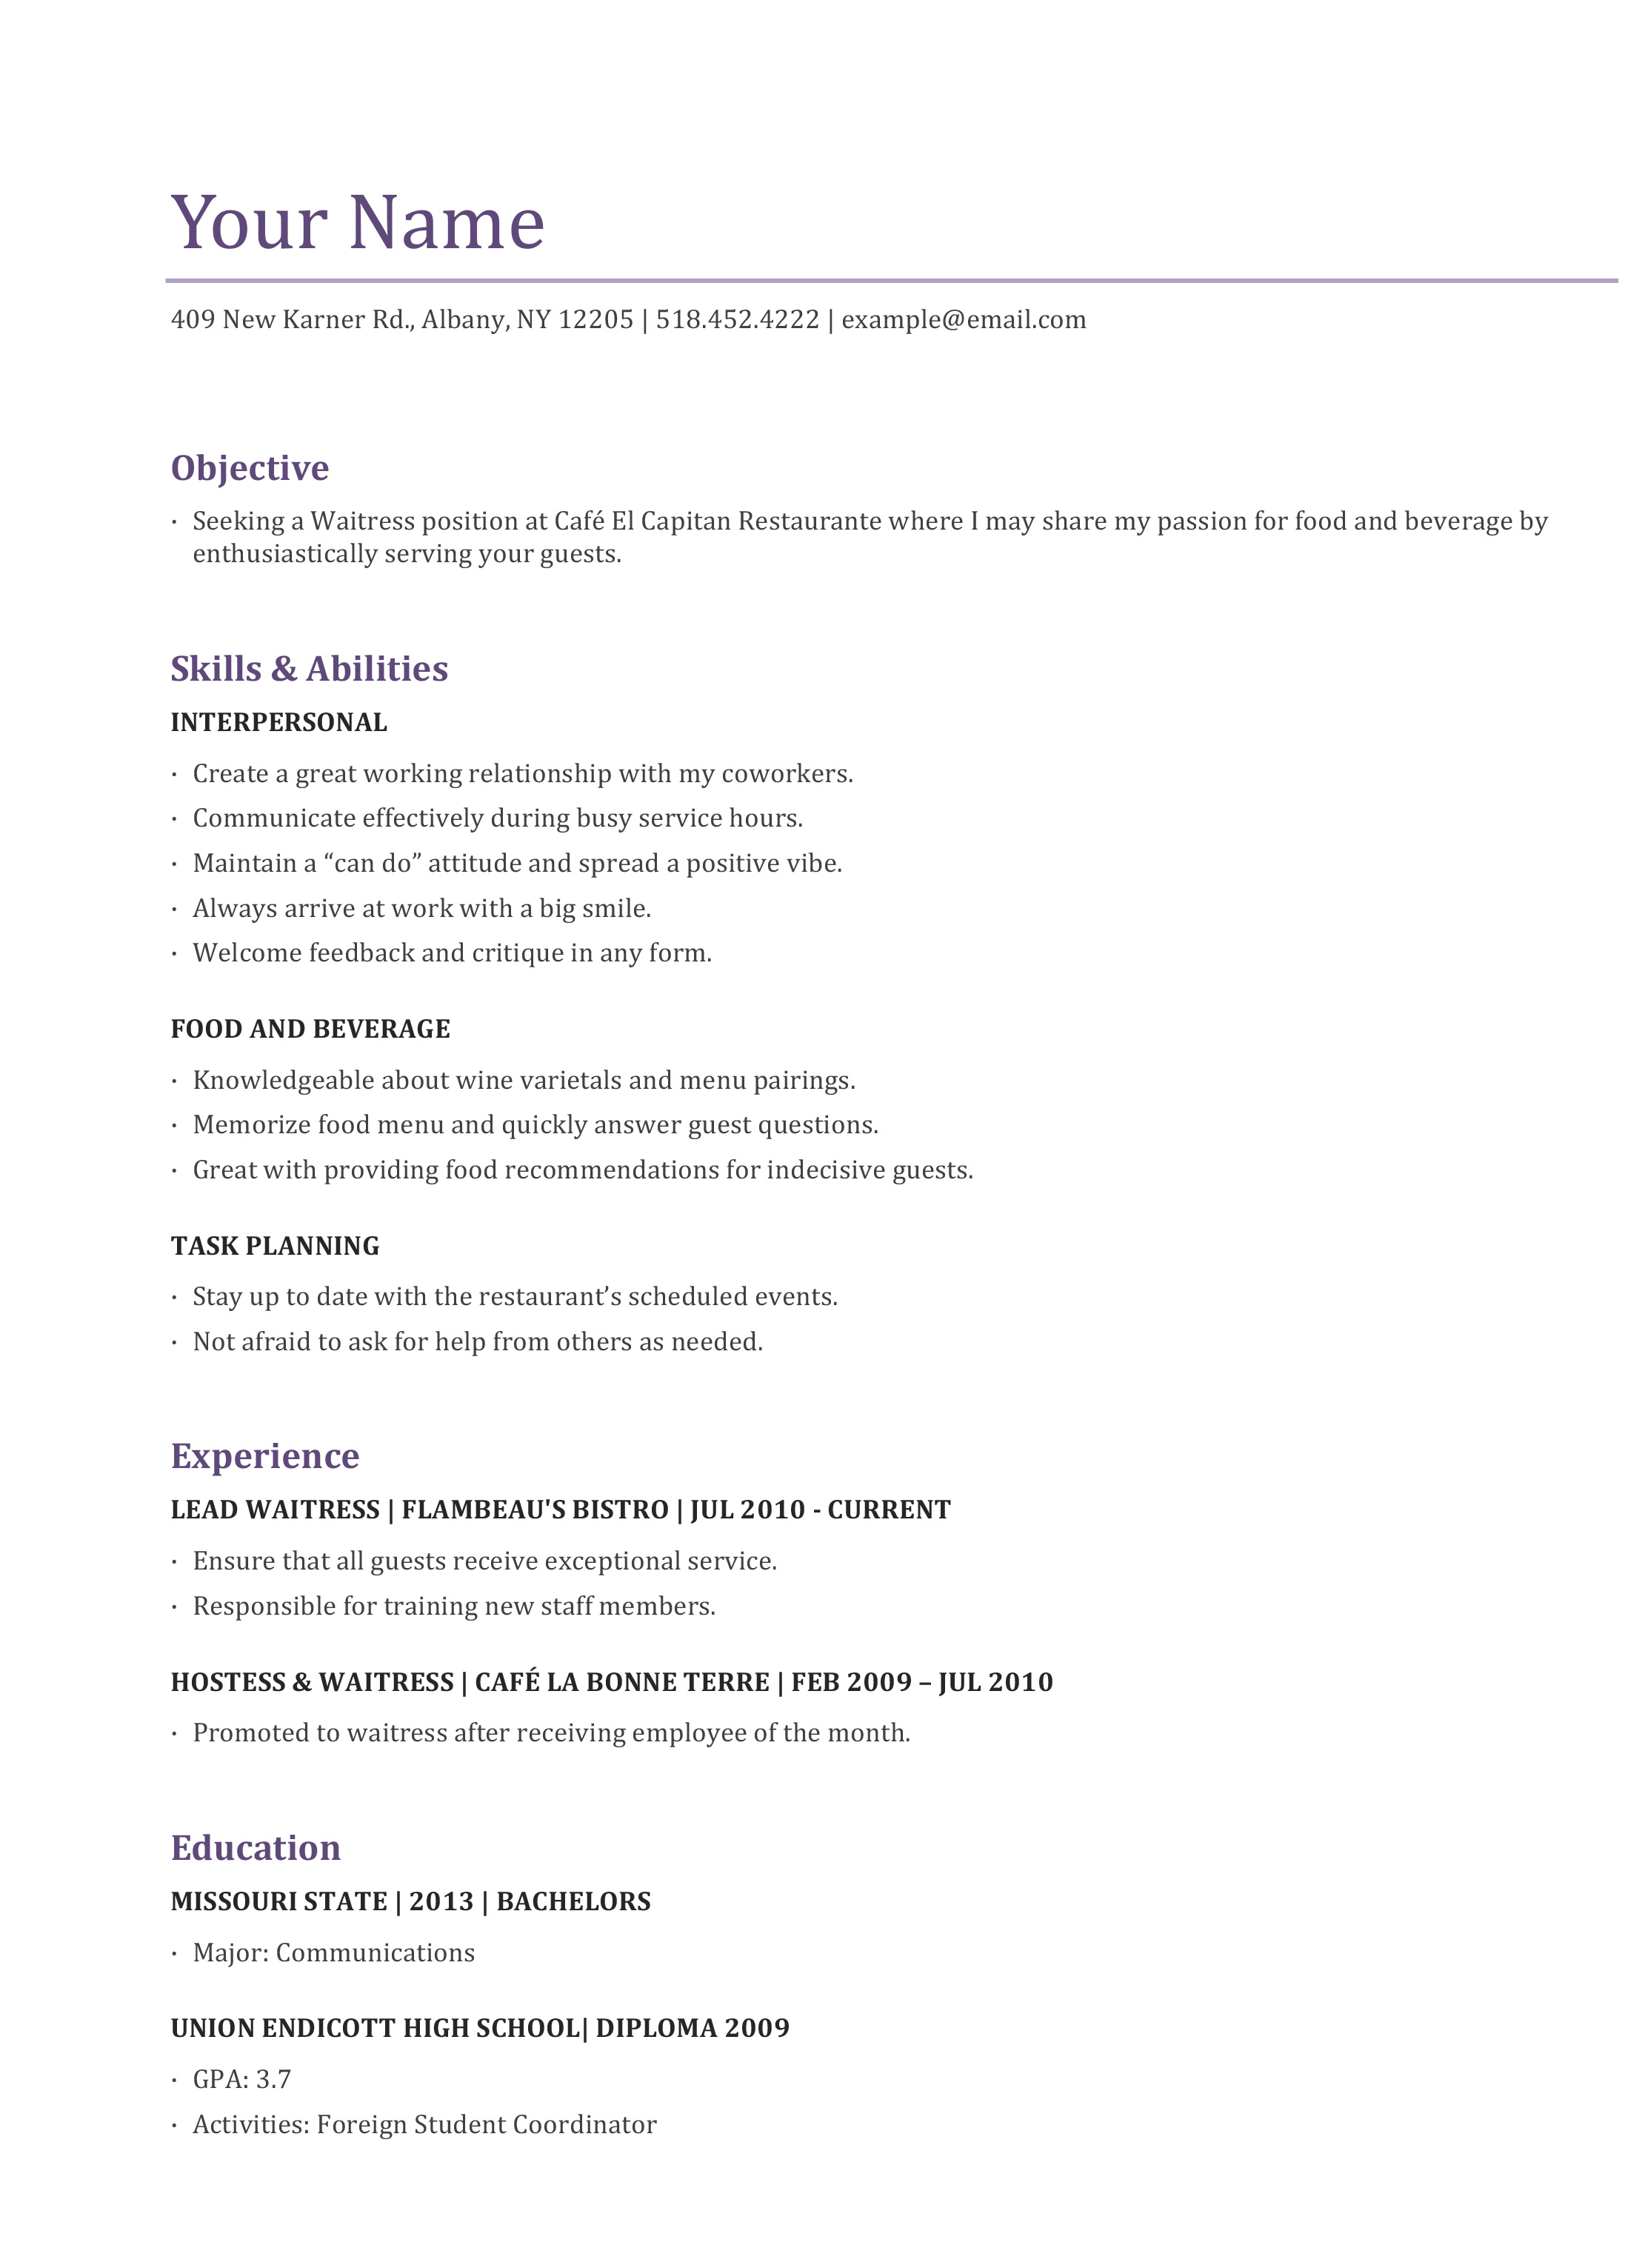 professional waiter bartender templates to showcase your talent clasifiedad com clasified essay sample bartender resume example